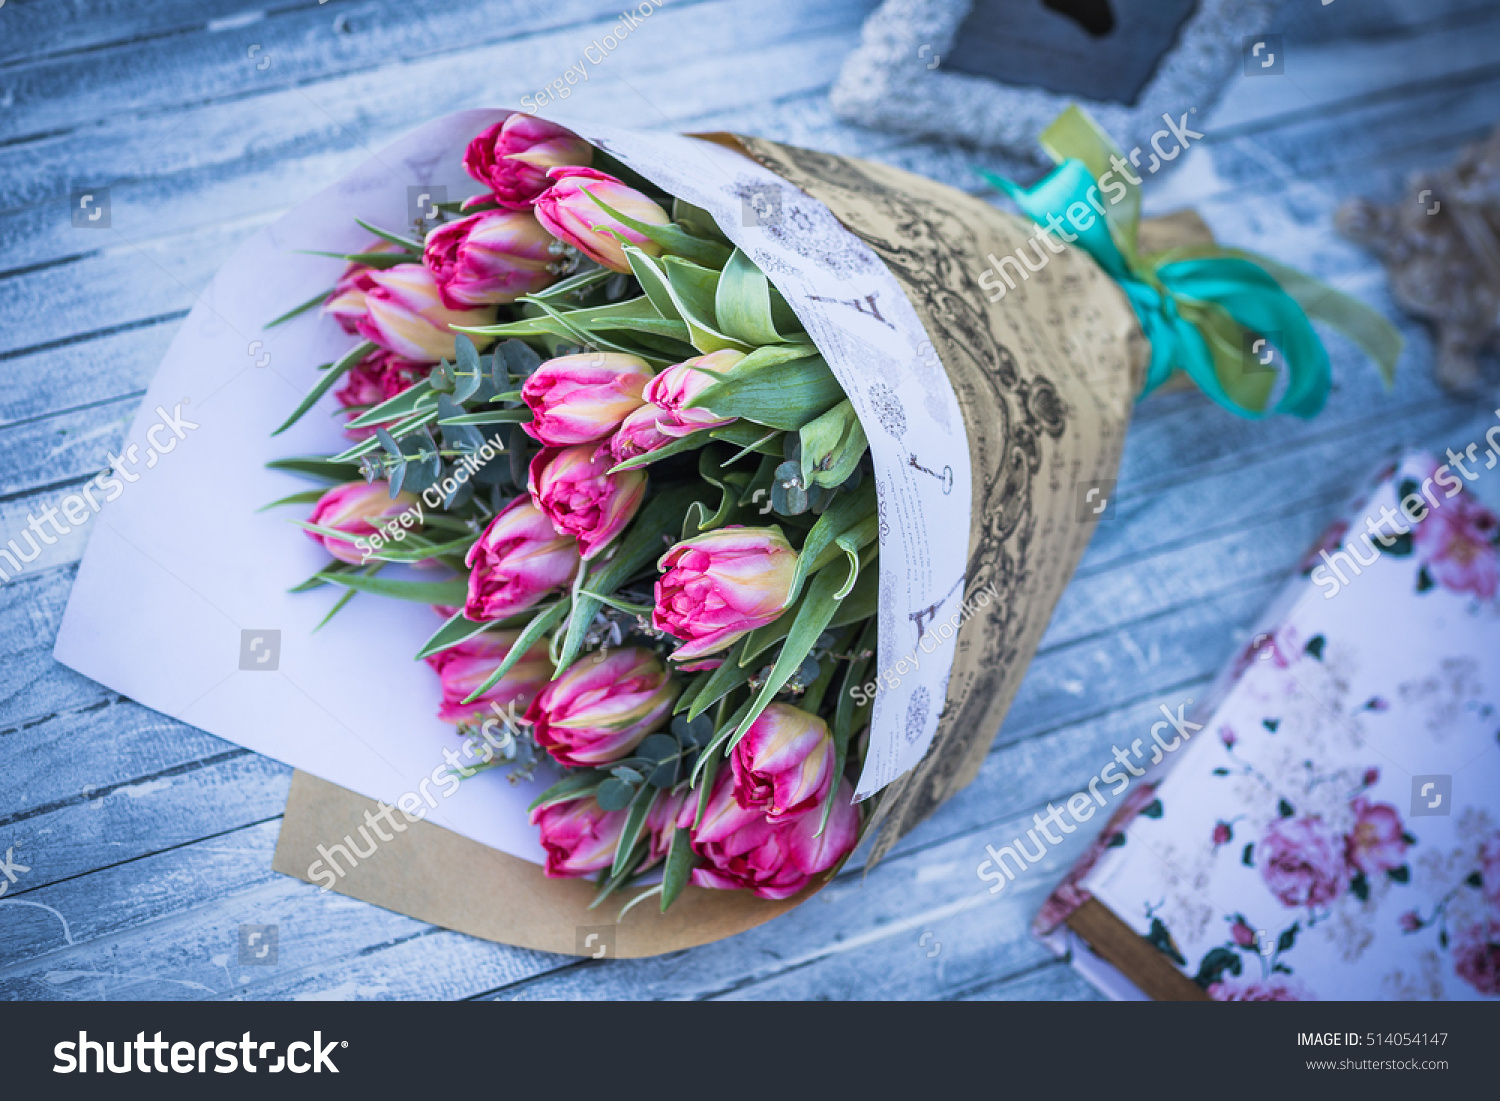 Flower Bouquet Love Day Valentine Marriage Stock Photo (Royalty Free ...